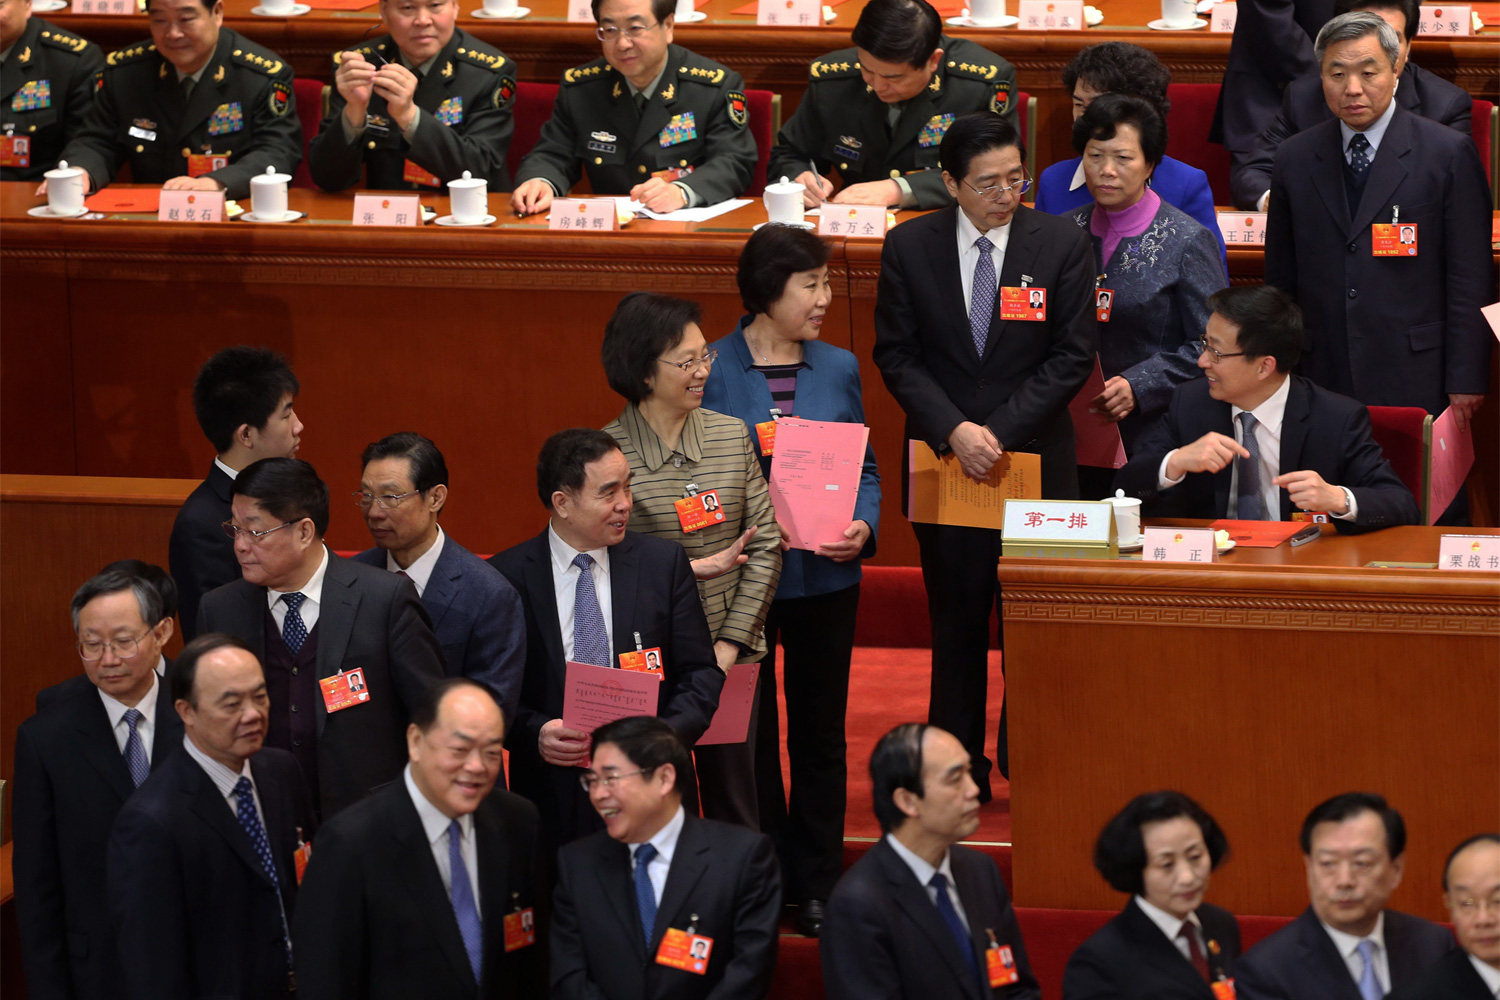 Deputies of the NPC queue up to vote whether to approve the nomination of Li Keqiang as the next Premier of China's State Council during the Fifth Plenary Session of the First Session of the 12th NPC at the Great Hall of the People, March 15, 2013. The vote was open to the media. Li's nomination was approved, making him the second most powerful official in China, directly behind Xi Jinping.